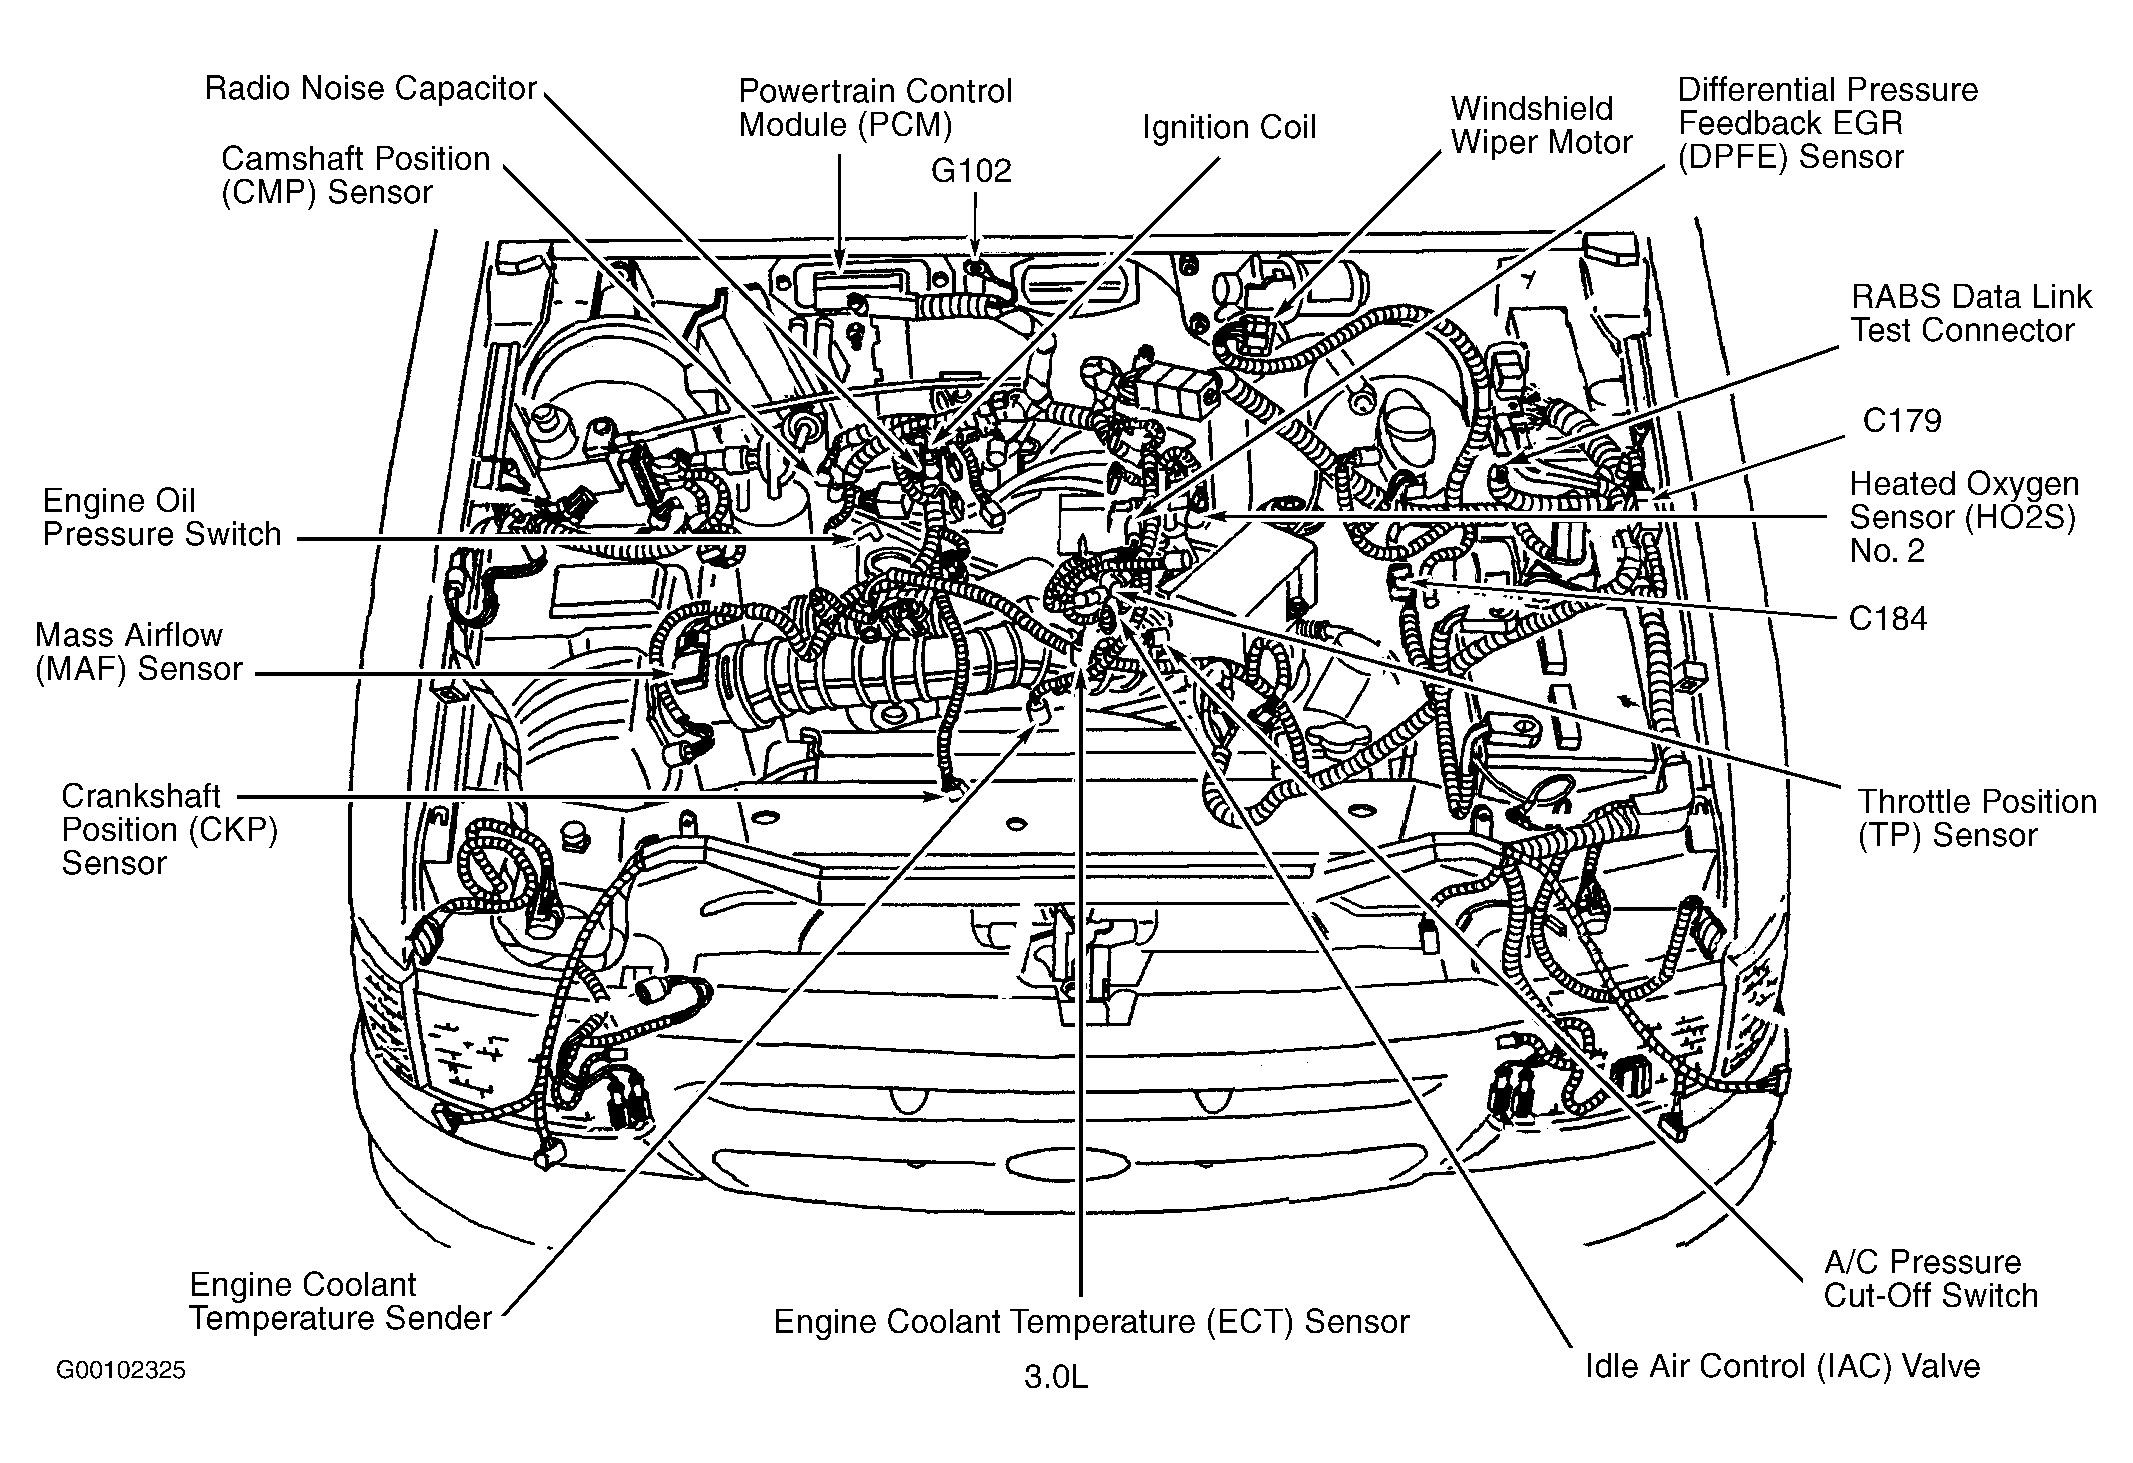 2013 Ford Escape Engine Bay Diagram In 2021 Ford Ranger 2004 Ford Ranger Ford Ranger Sport